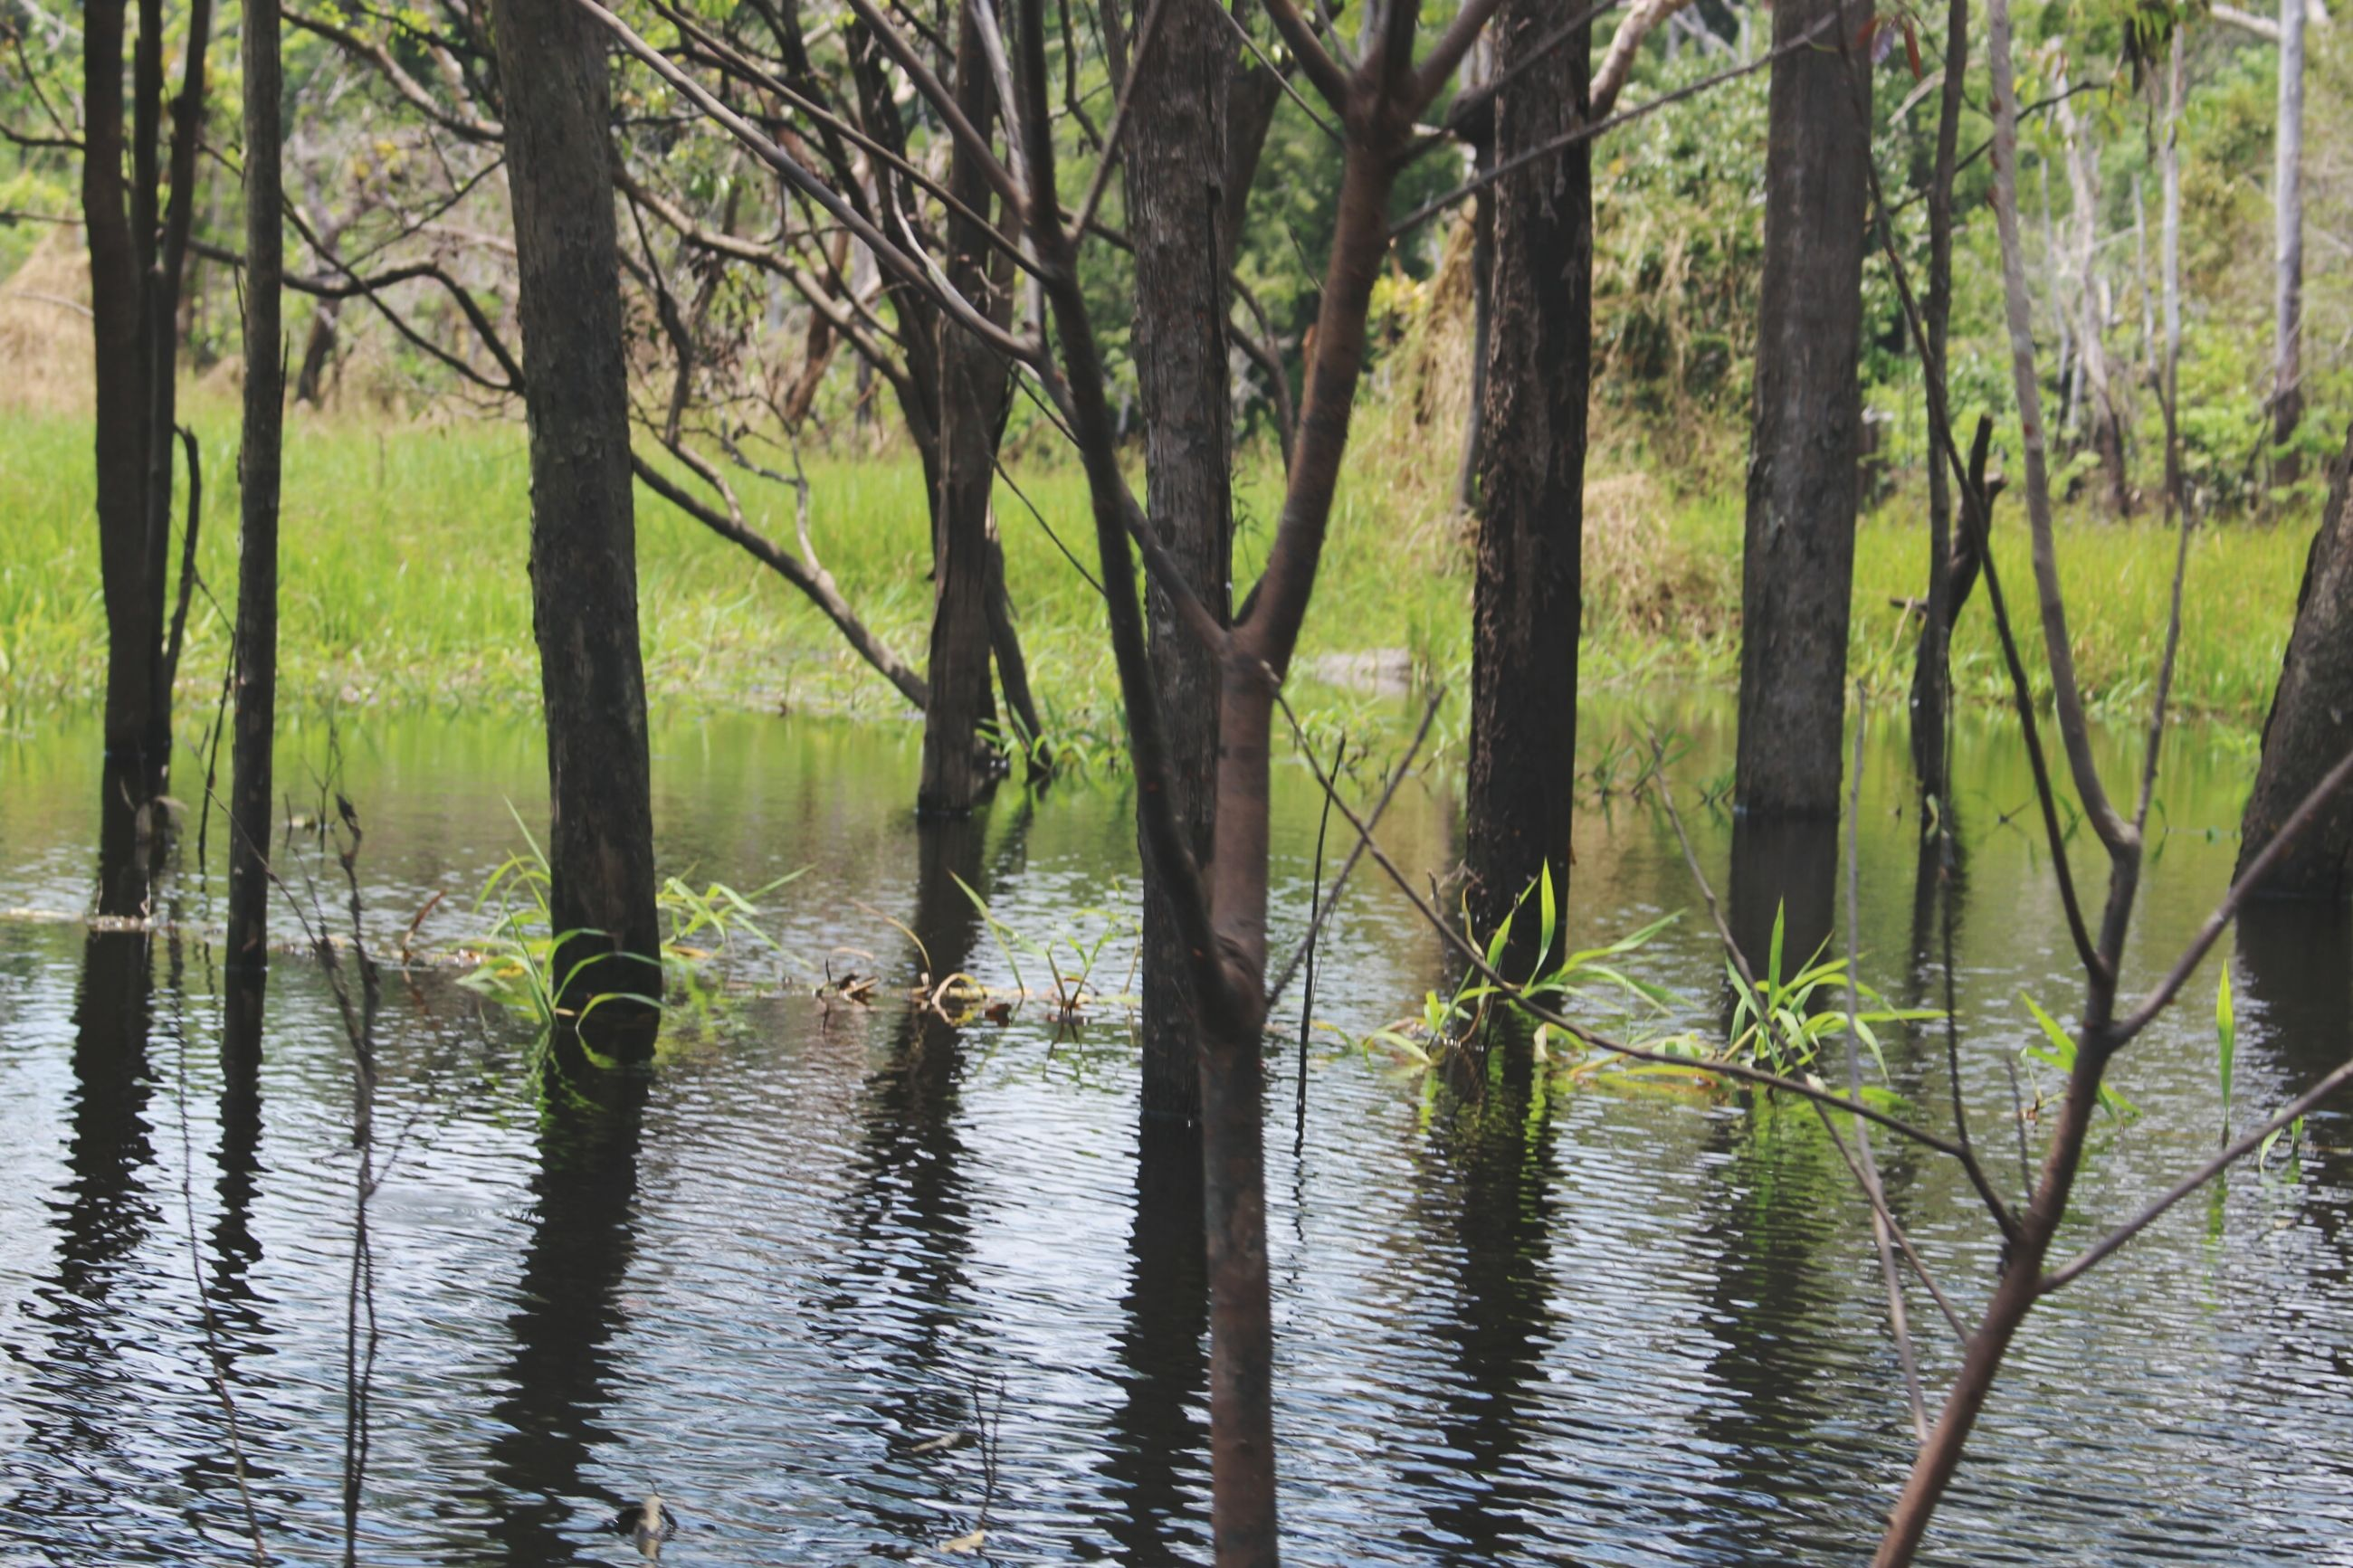 water, tree, growth, tranquility, lake, nature, tranquil scene, reflection, beauty in nature, green color, scenics, waterfront, plant, branch, tree trunk, day, forest, outdoors, river, rippled